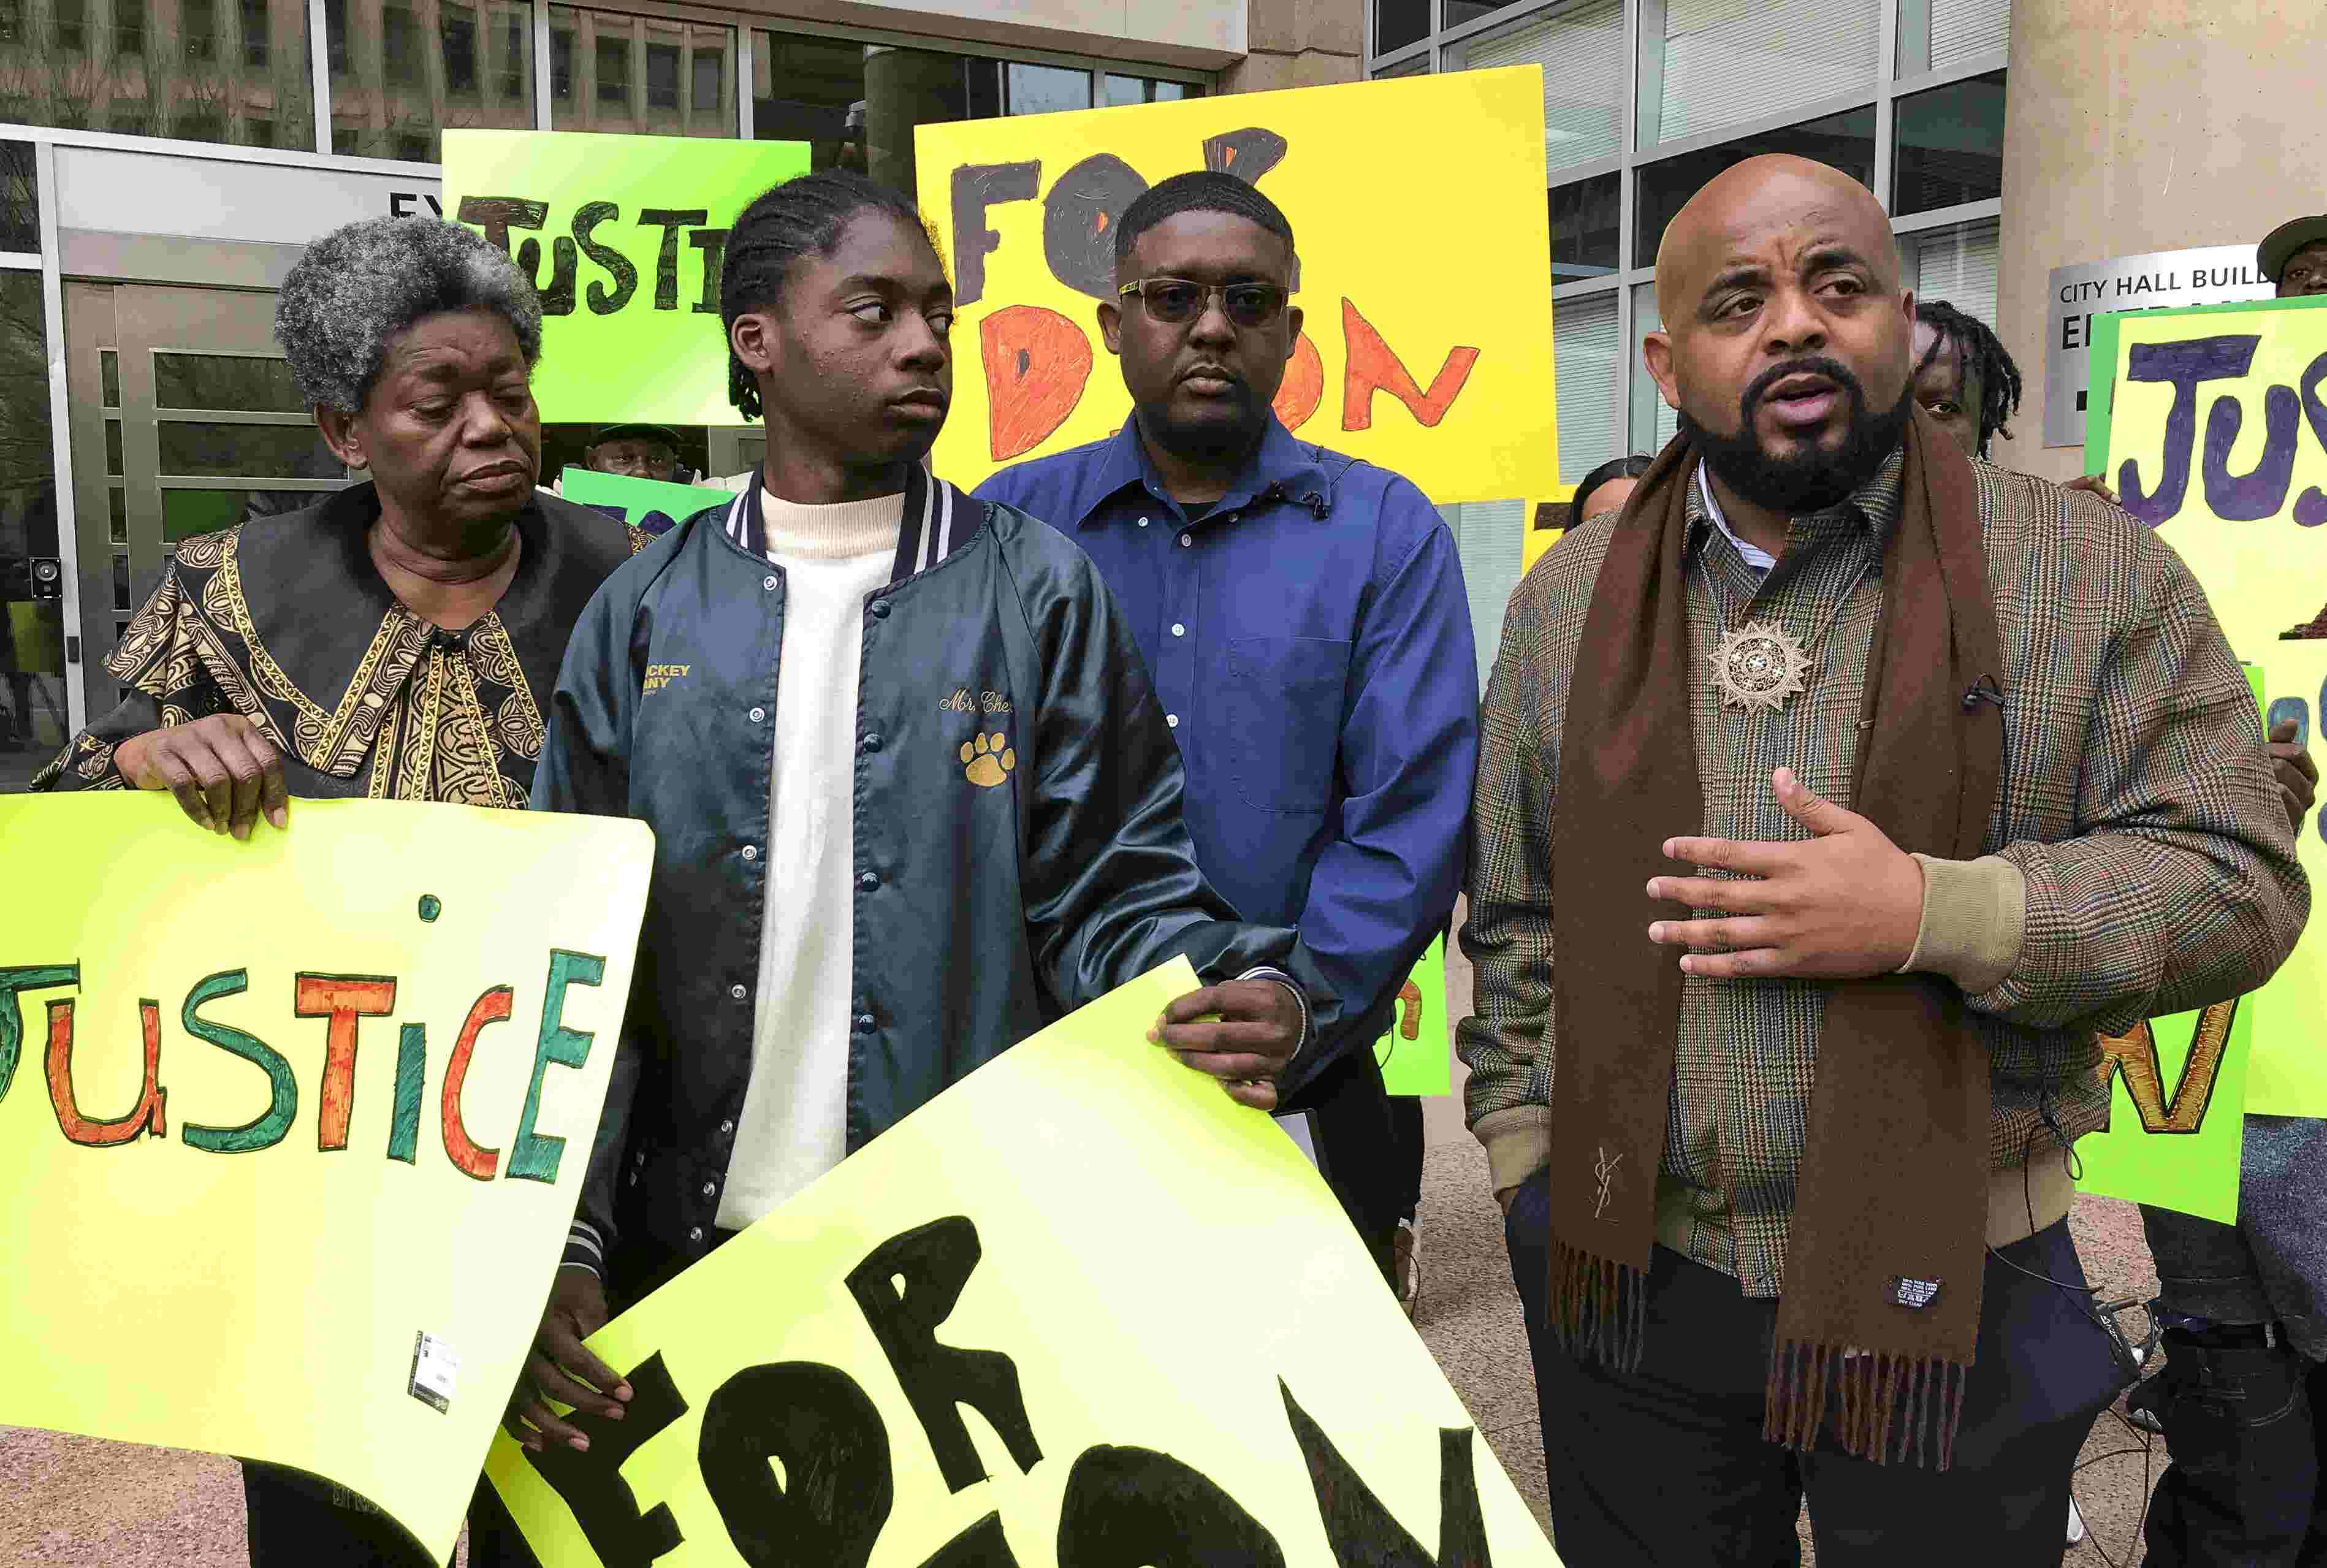 Group shows support for Dion Humphrey, demands Phoenix police apologize